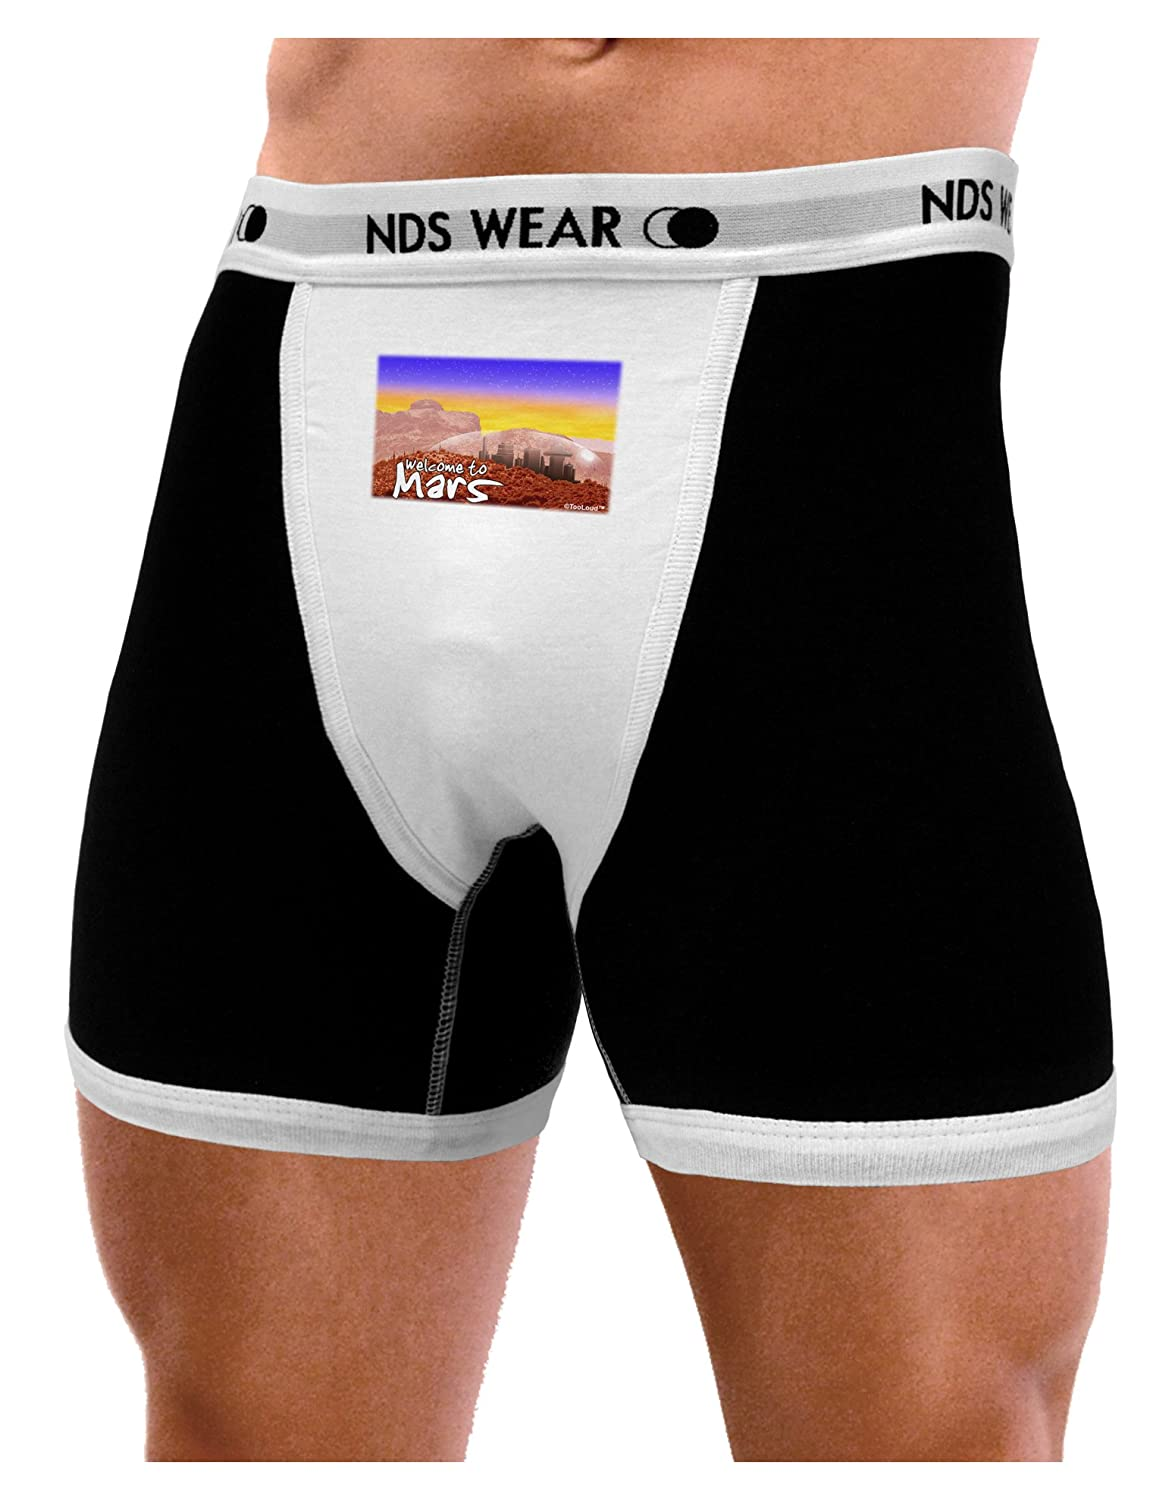 NDS Wear TooLoud Welcome to Mars Mens Boxer Brief Underwear